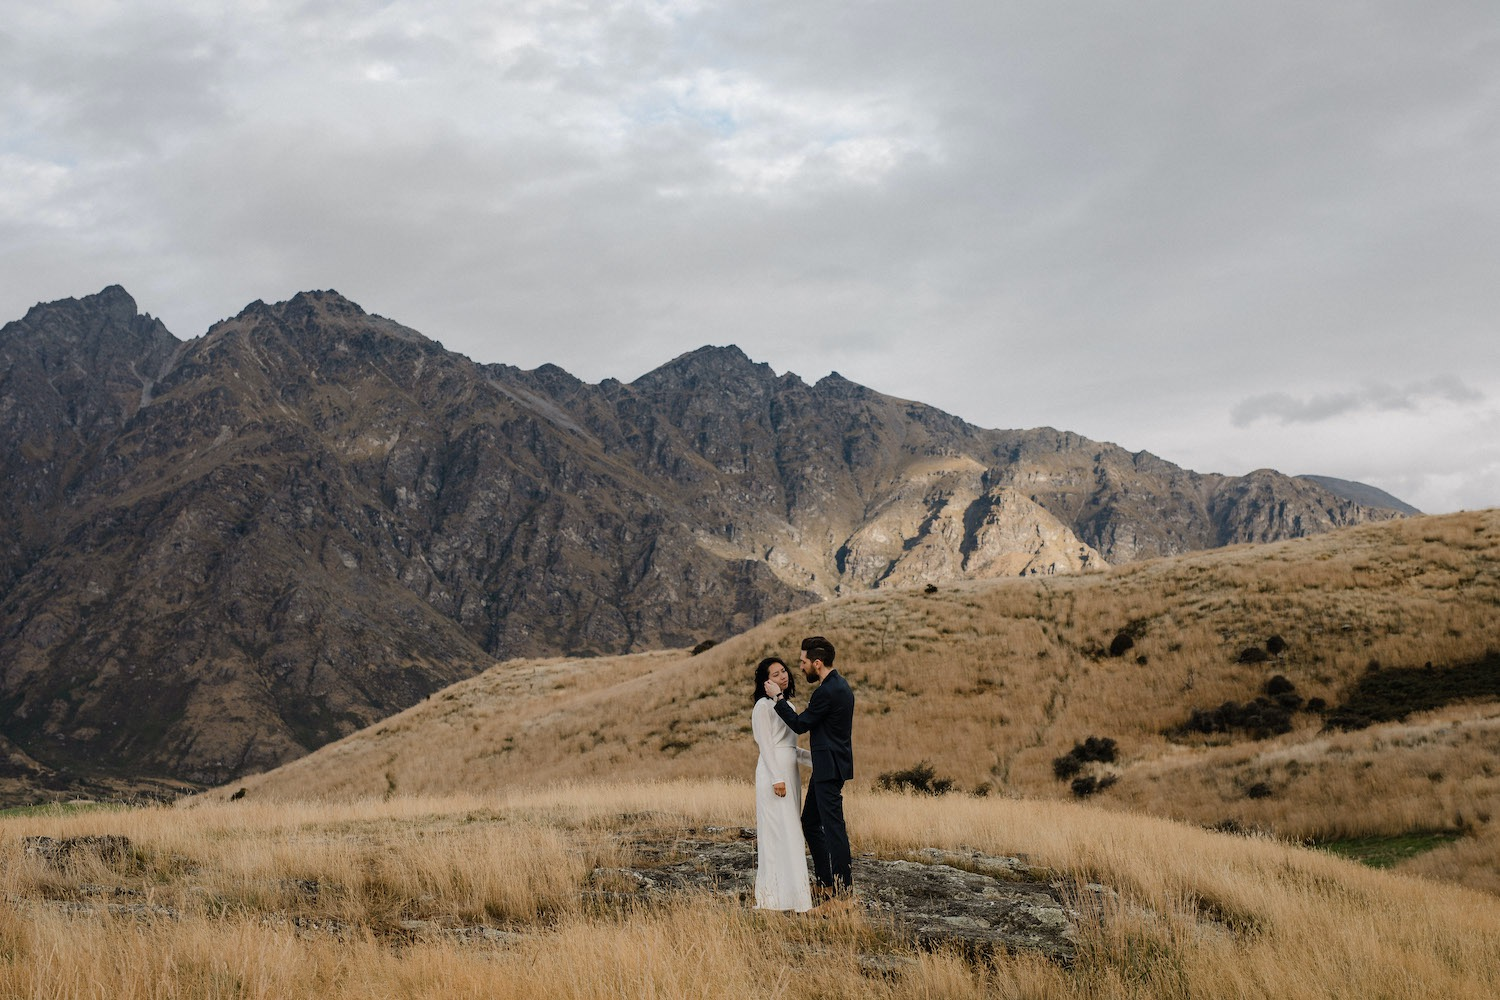 Bride and groom celebrating their elopement wedding in New Zealand